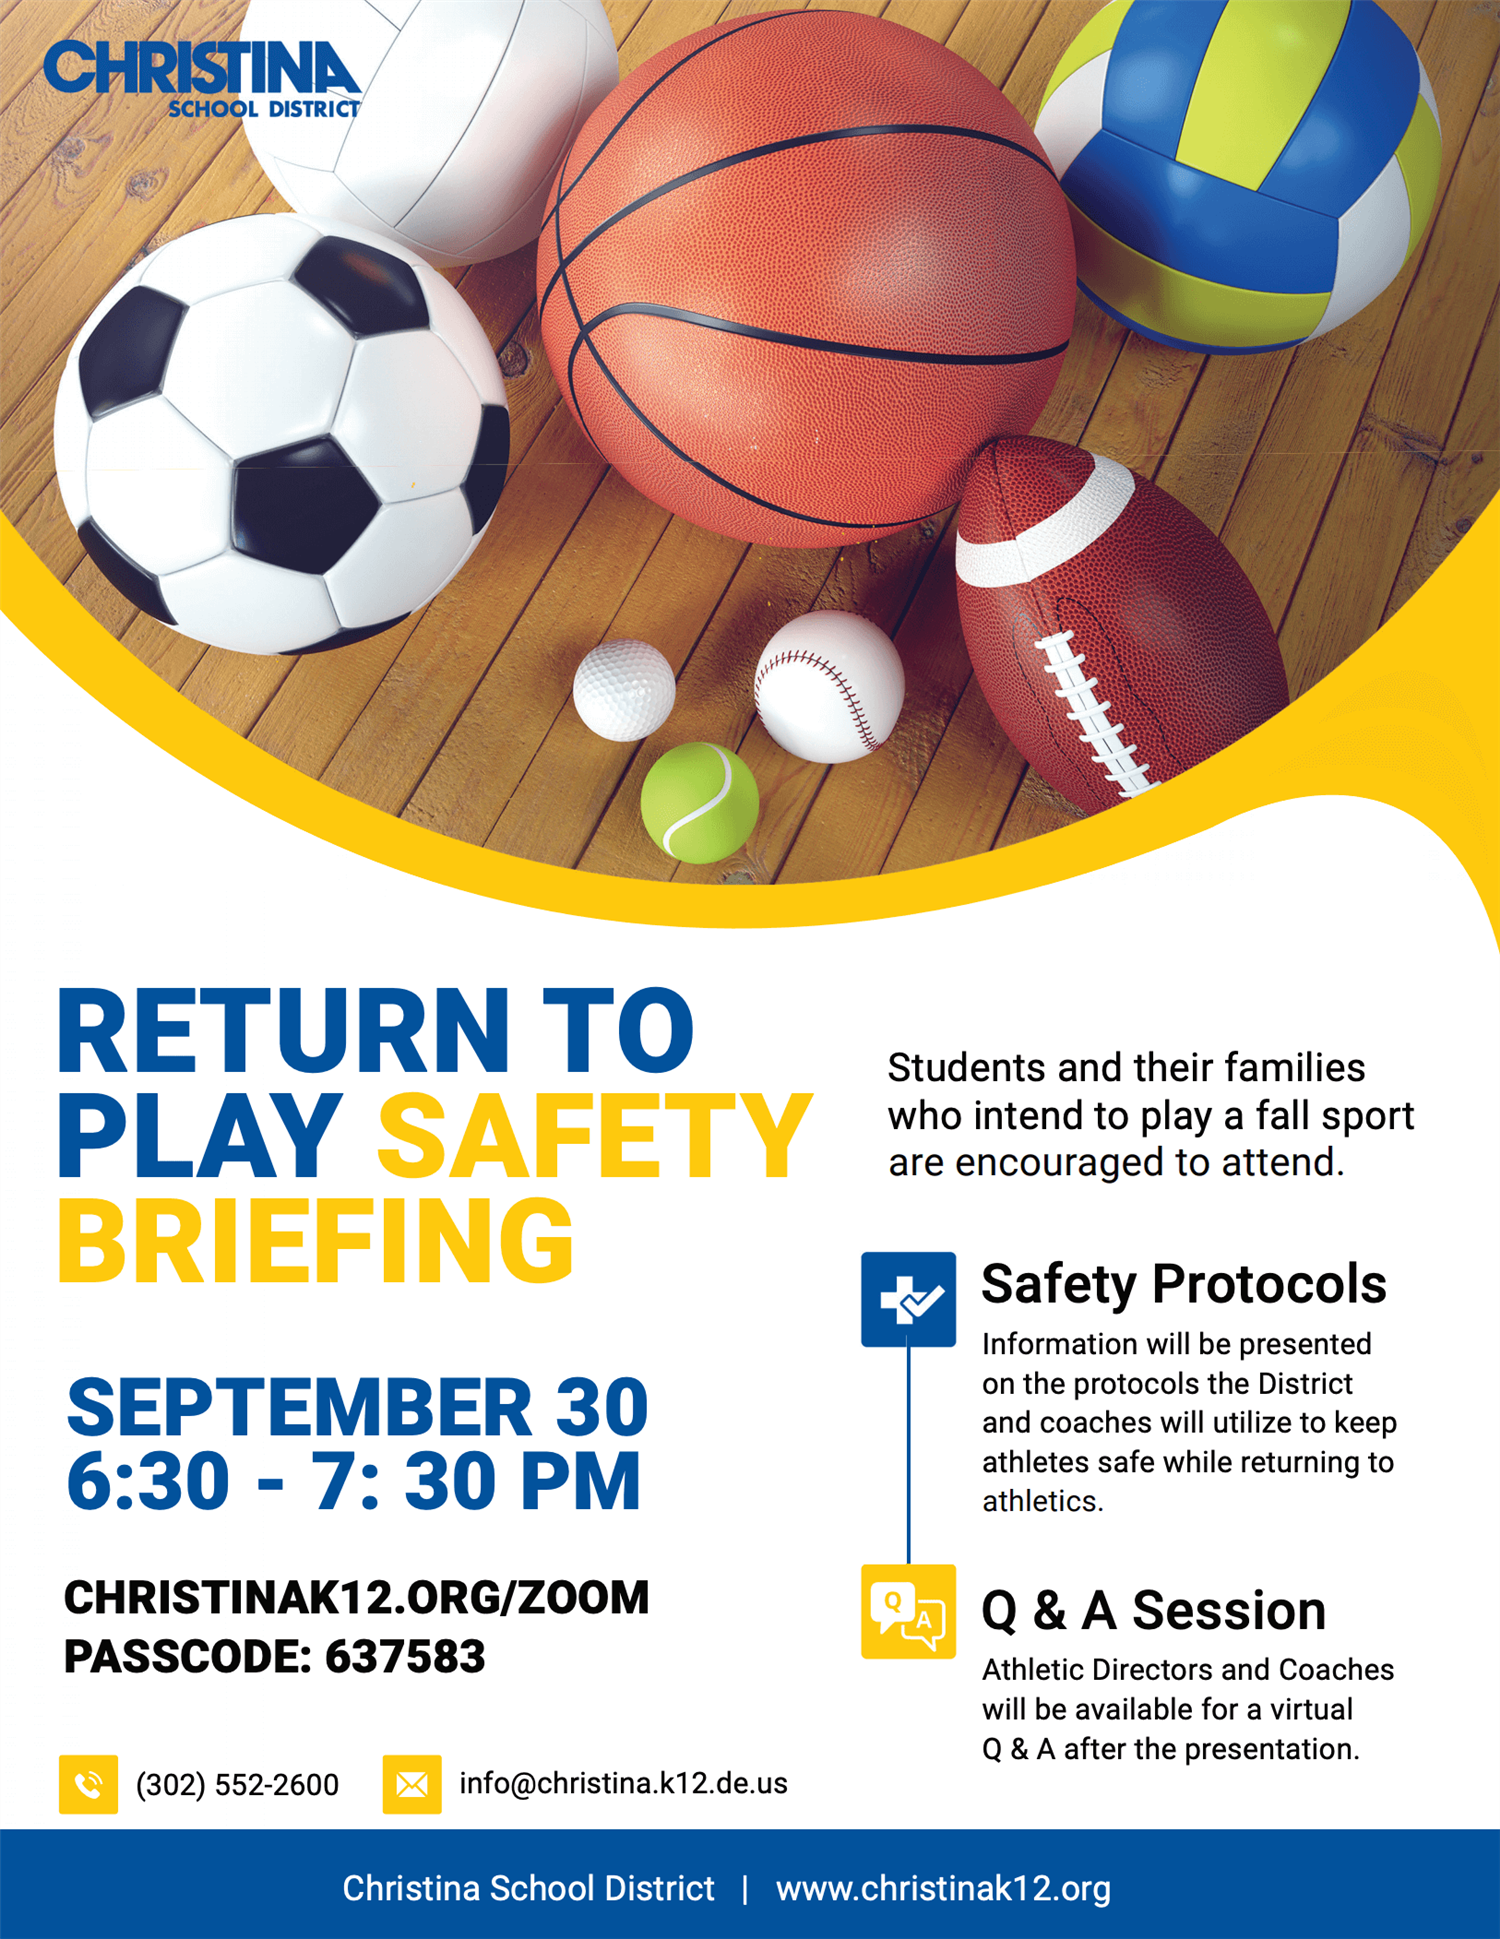 Return to play safety briefing september 30 7:30 safety protocols and q&a session